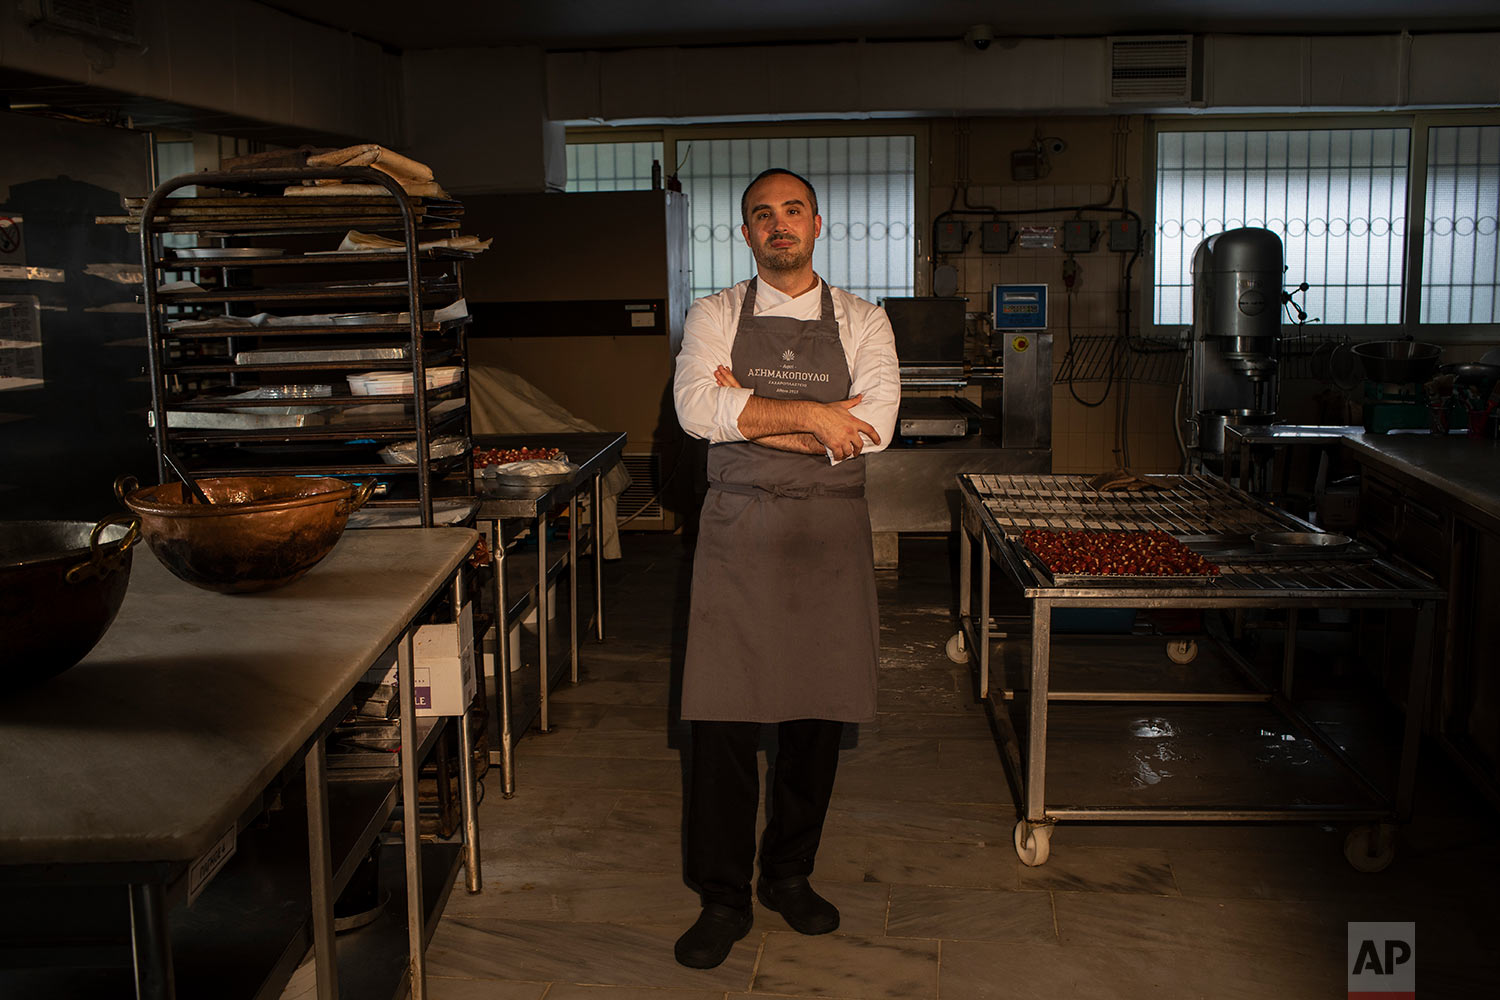 Vasilis Asimakopoulos, a 36-year-old head of pastry production, poses for a photo in his family's patisserie workshop in Athens. (AP Photo/Petros Giannakouris)